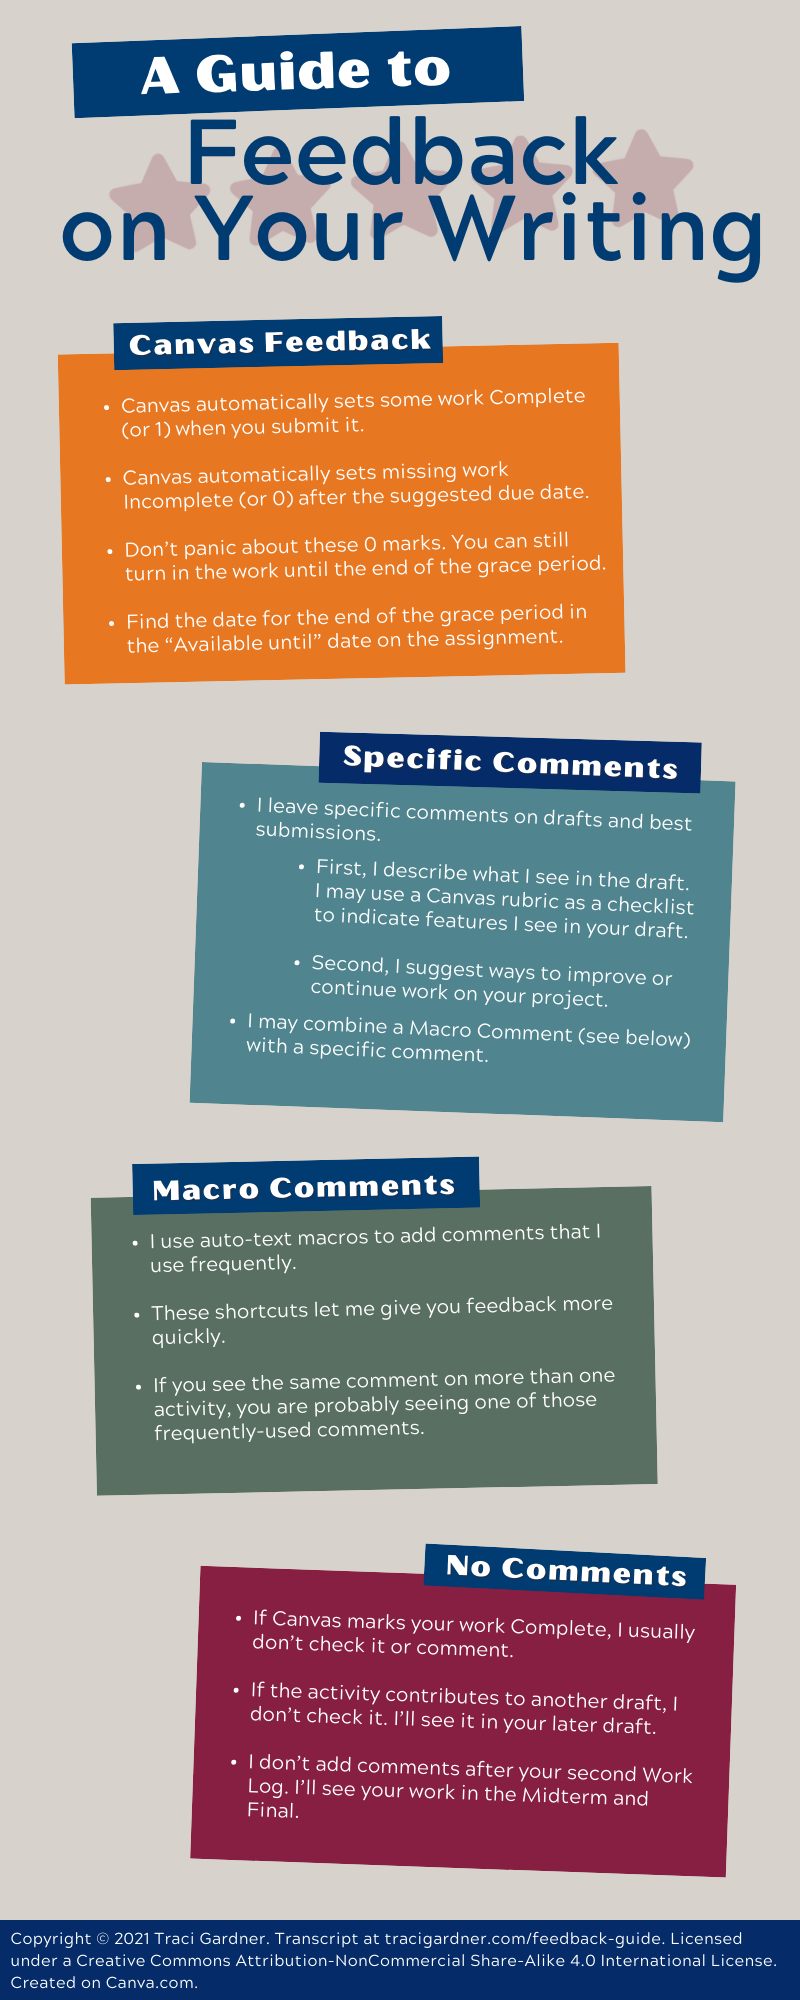 A Guide to Feedback on Your Writing, with transcript at link